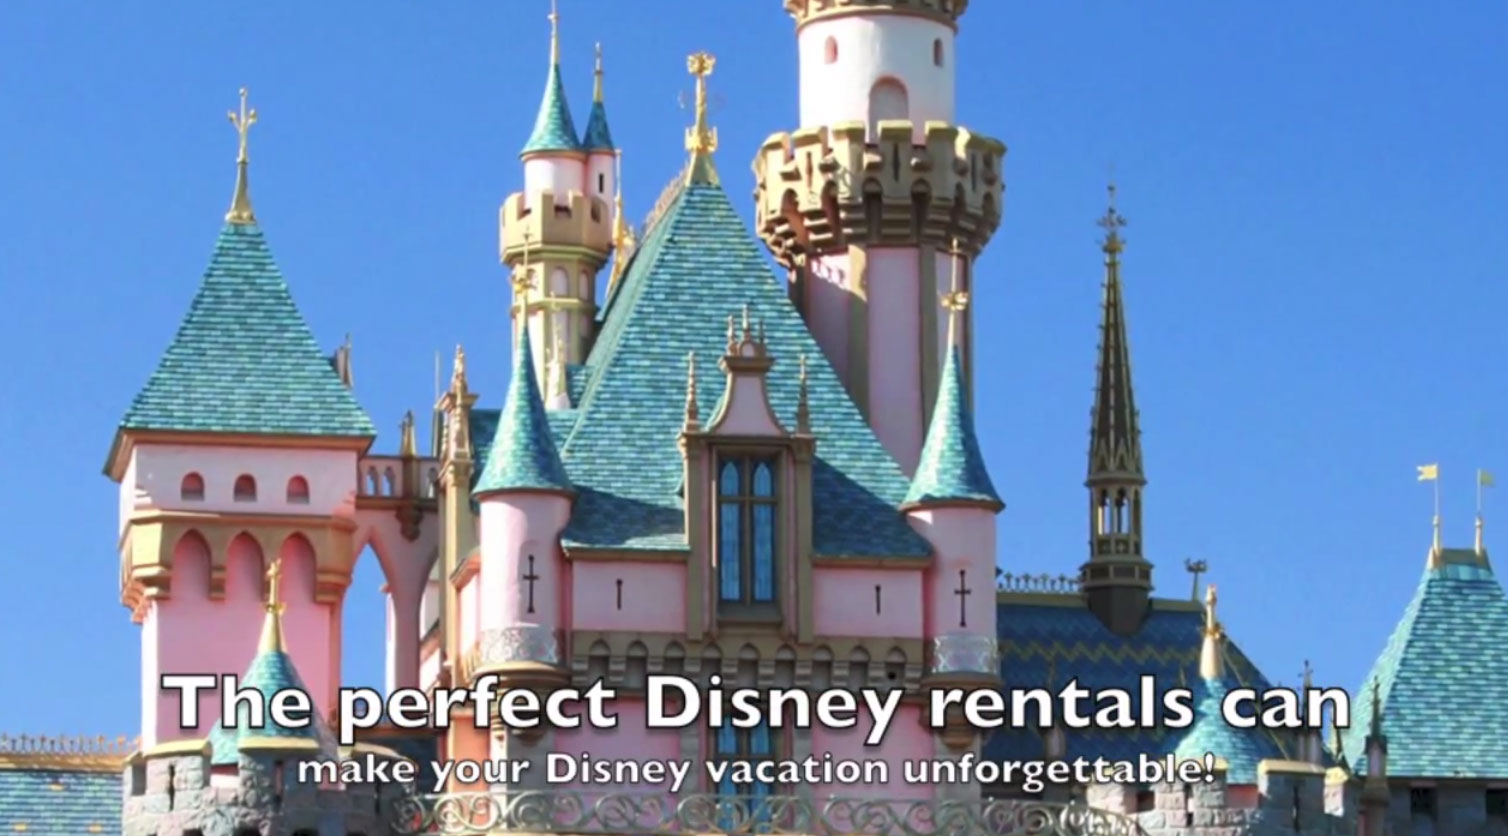 Disney Rentals from Vacation Pool Homes